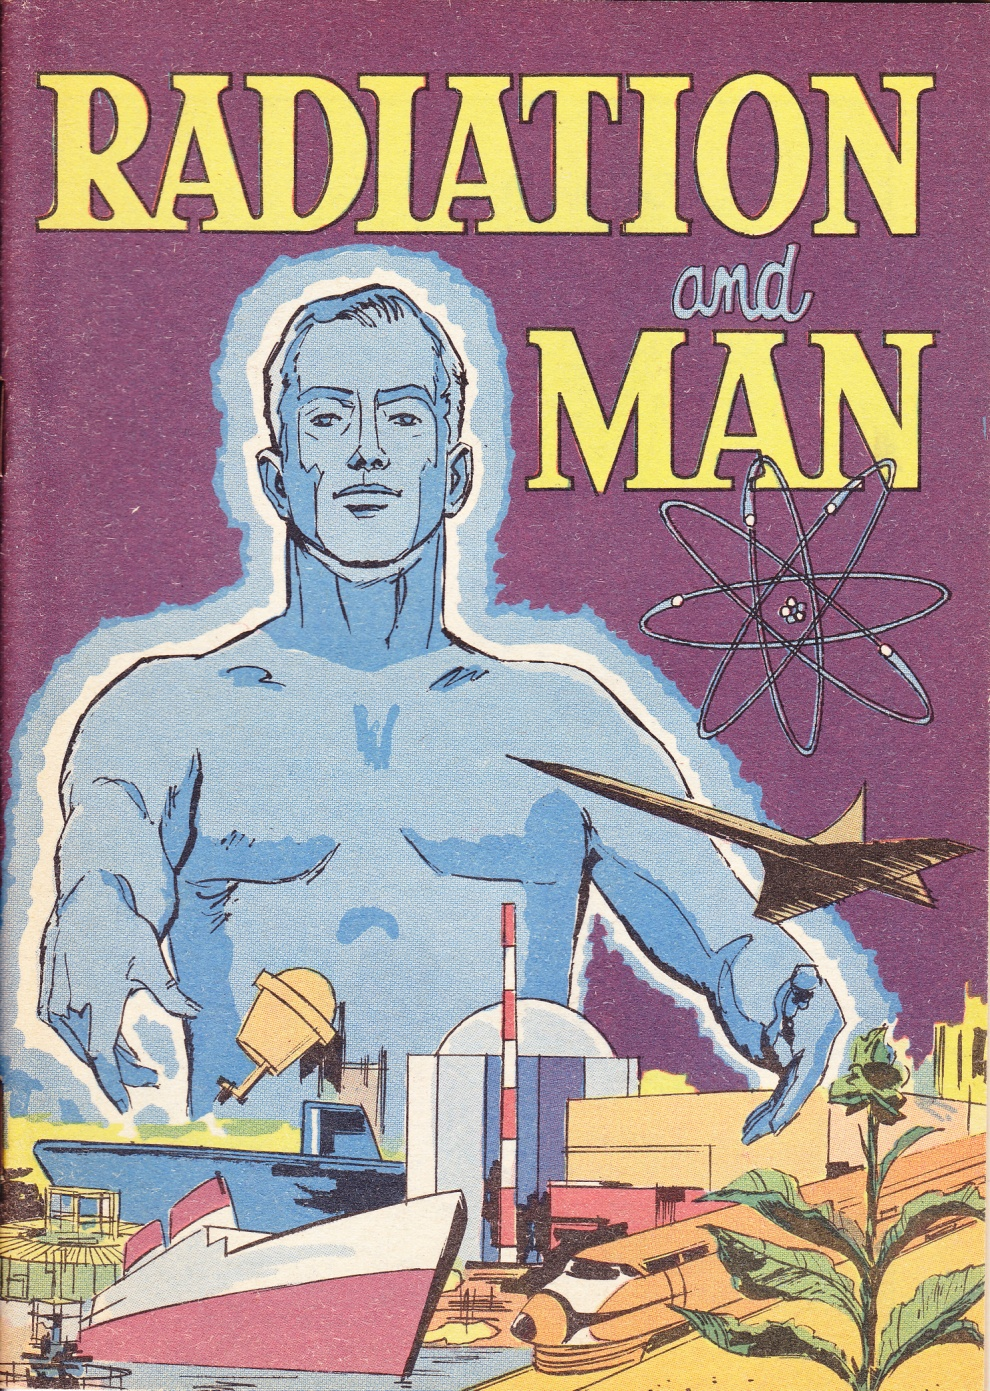 C:\Users\Robert\Documents\CARTOONING ILLUSTRATION ANIMATION\IMAGE COMIC BOOK COVERS\RADIATION AND MAN, Ganes Productions Ltd..jpg